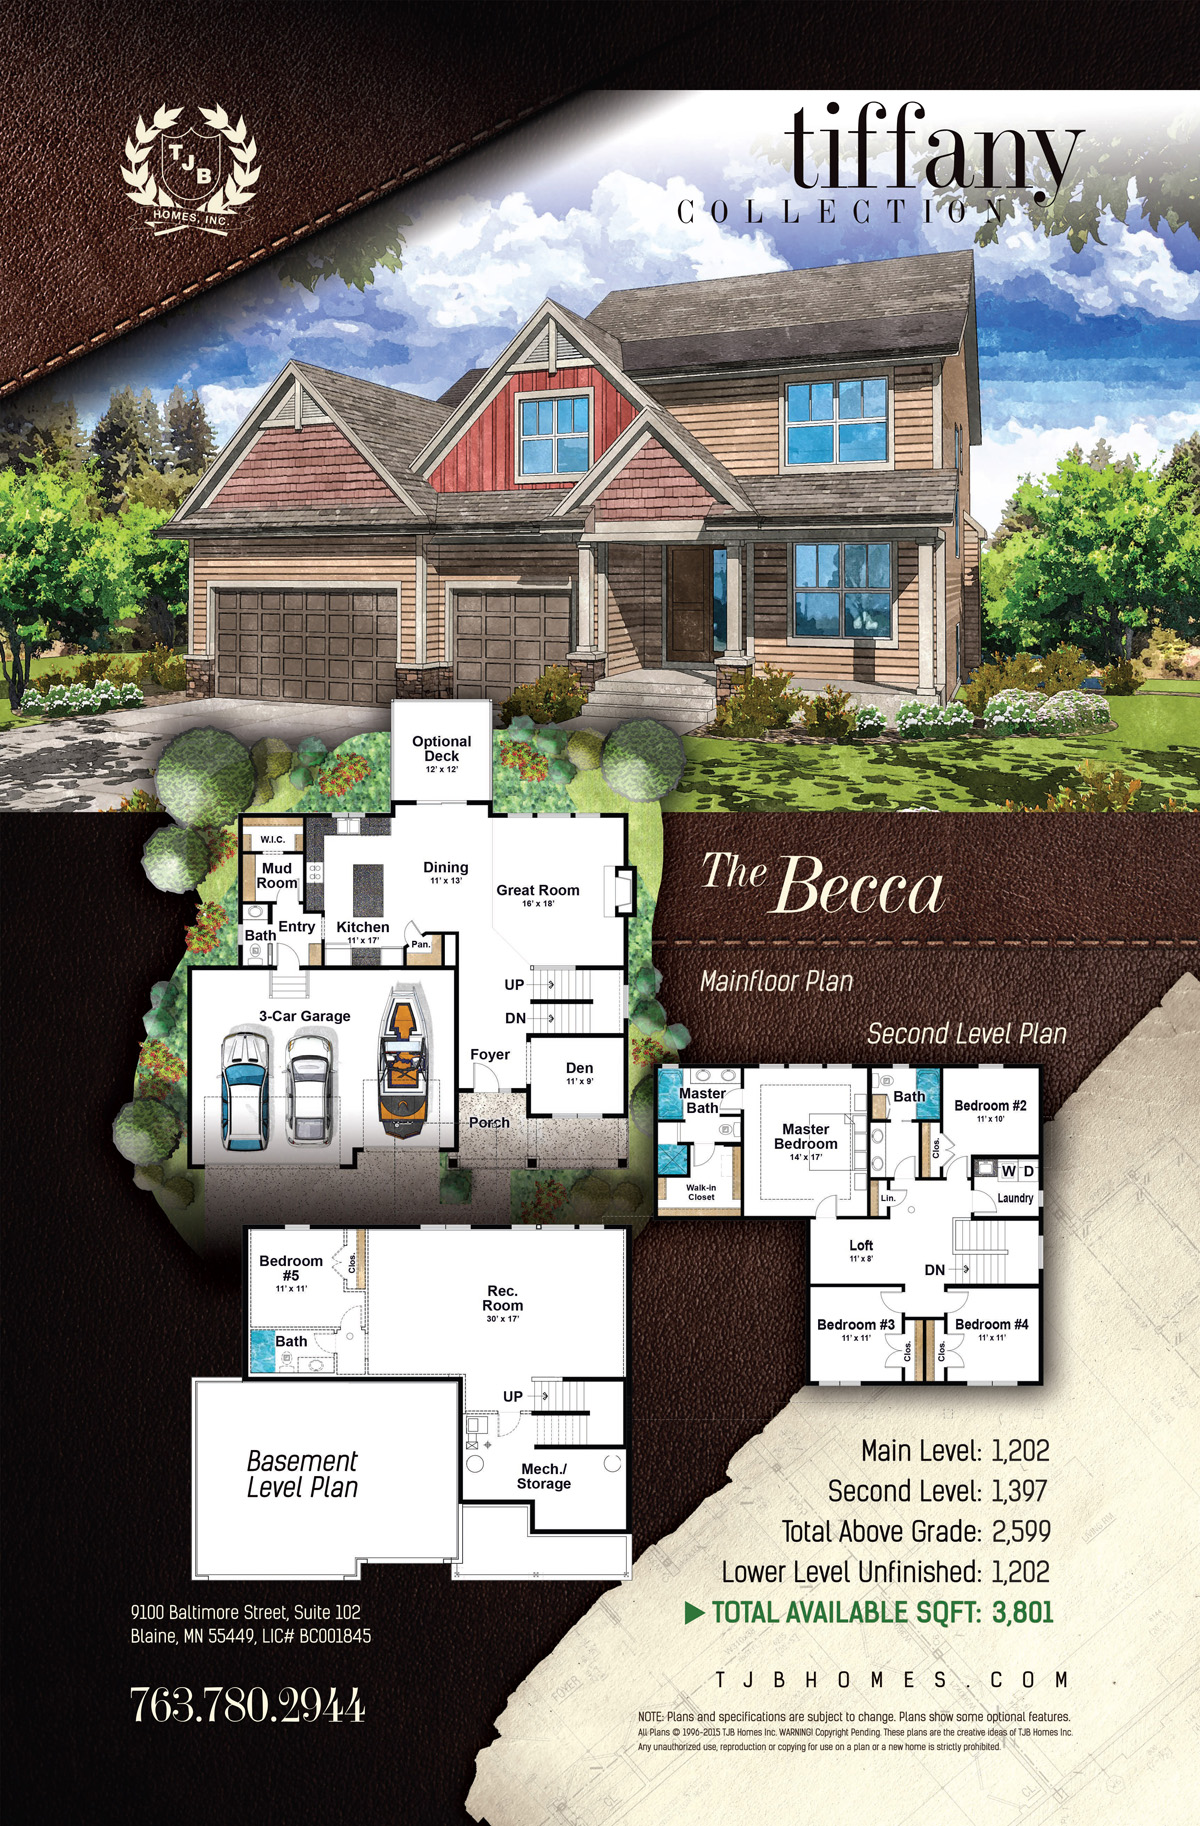 Tiffany Collection Home Plans - The Becca